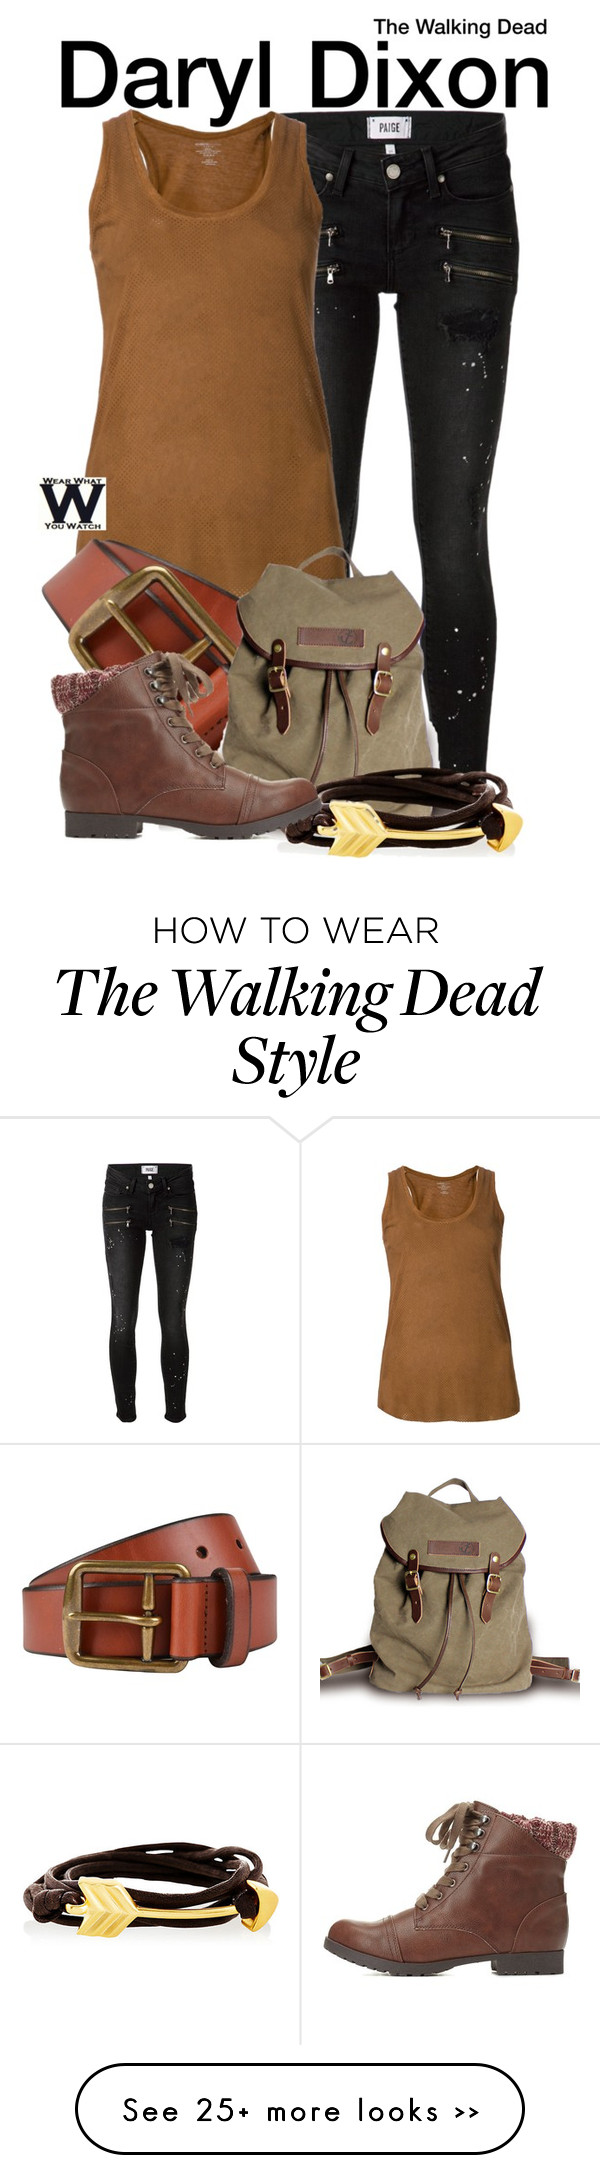 """""""The Walking Dead"""" by wearwhatyouwatch on Polyvore"""